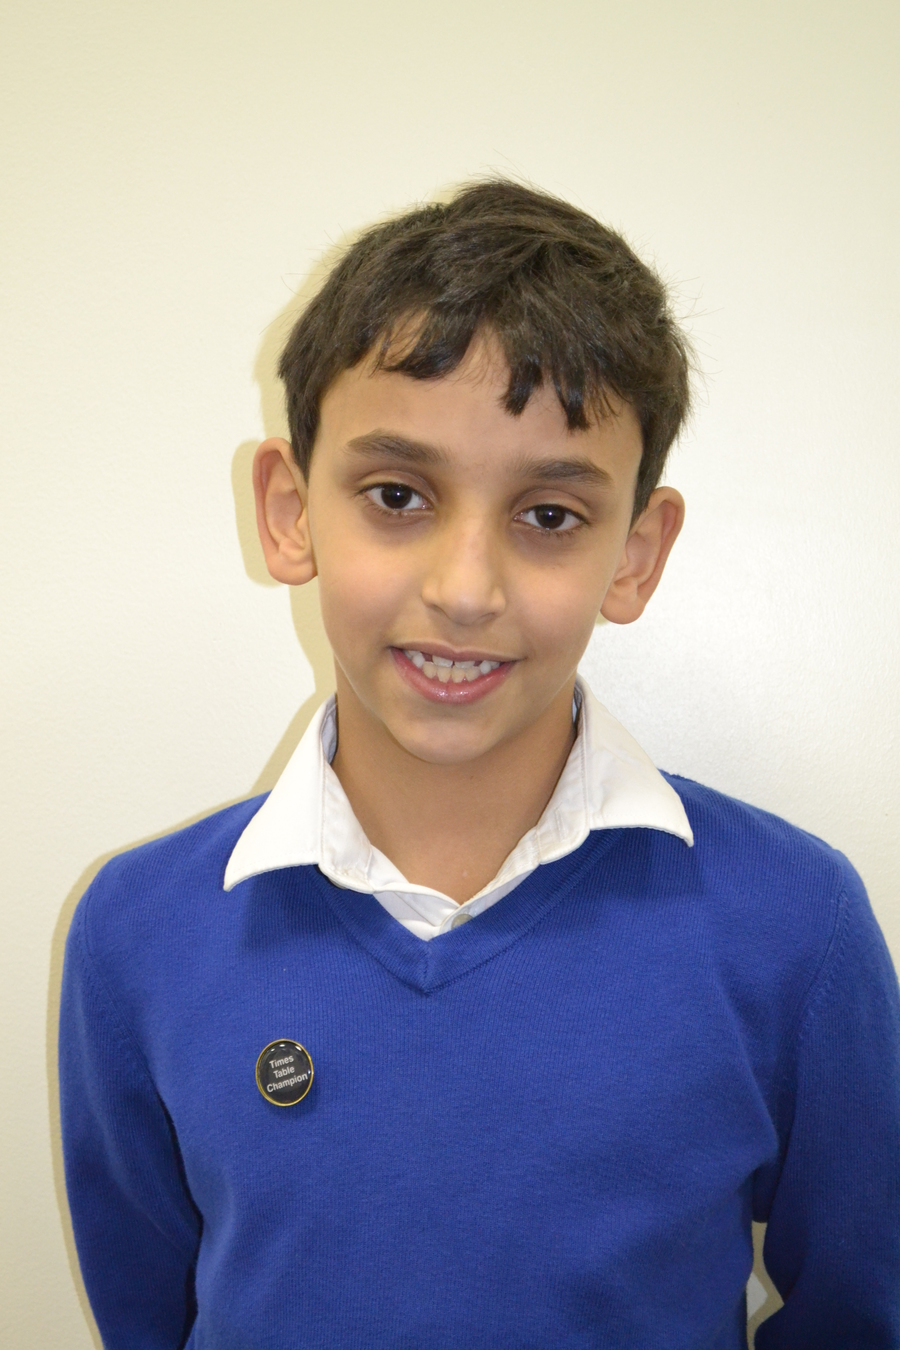 Well done Mohammed!